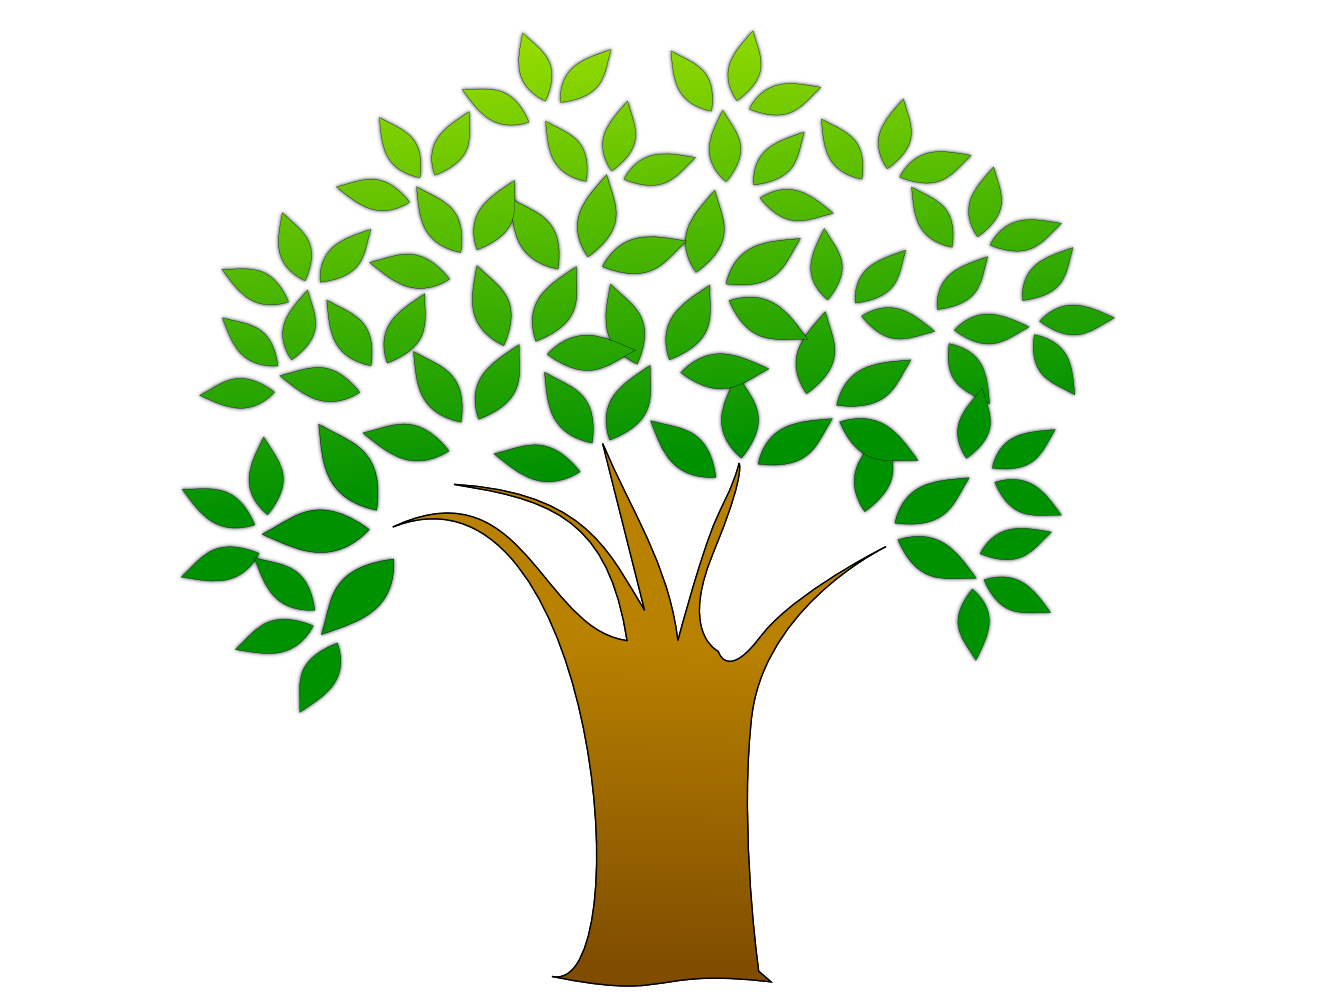 Free Simple Tree Cliparts, Download Free Clip Art, Free Clip.